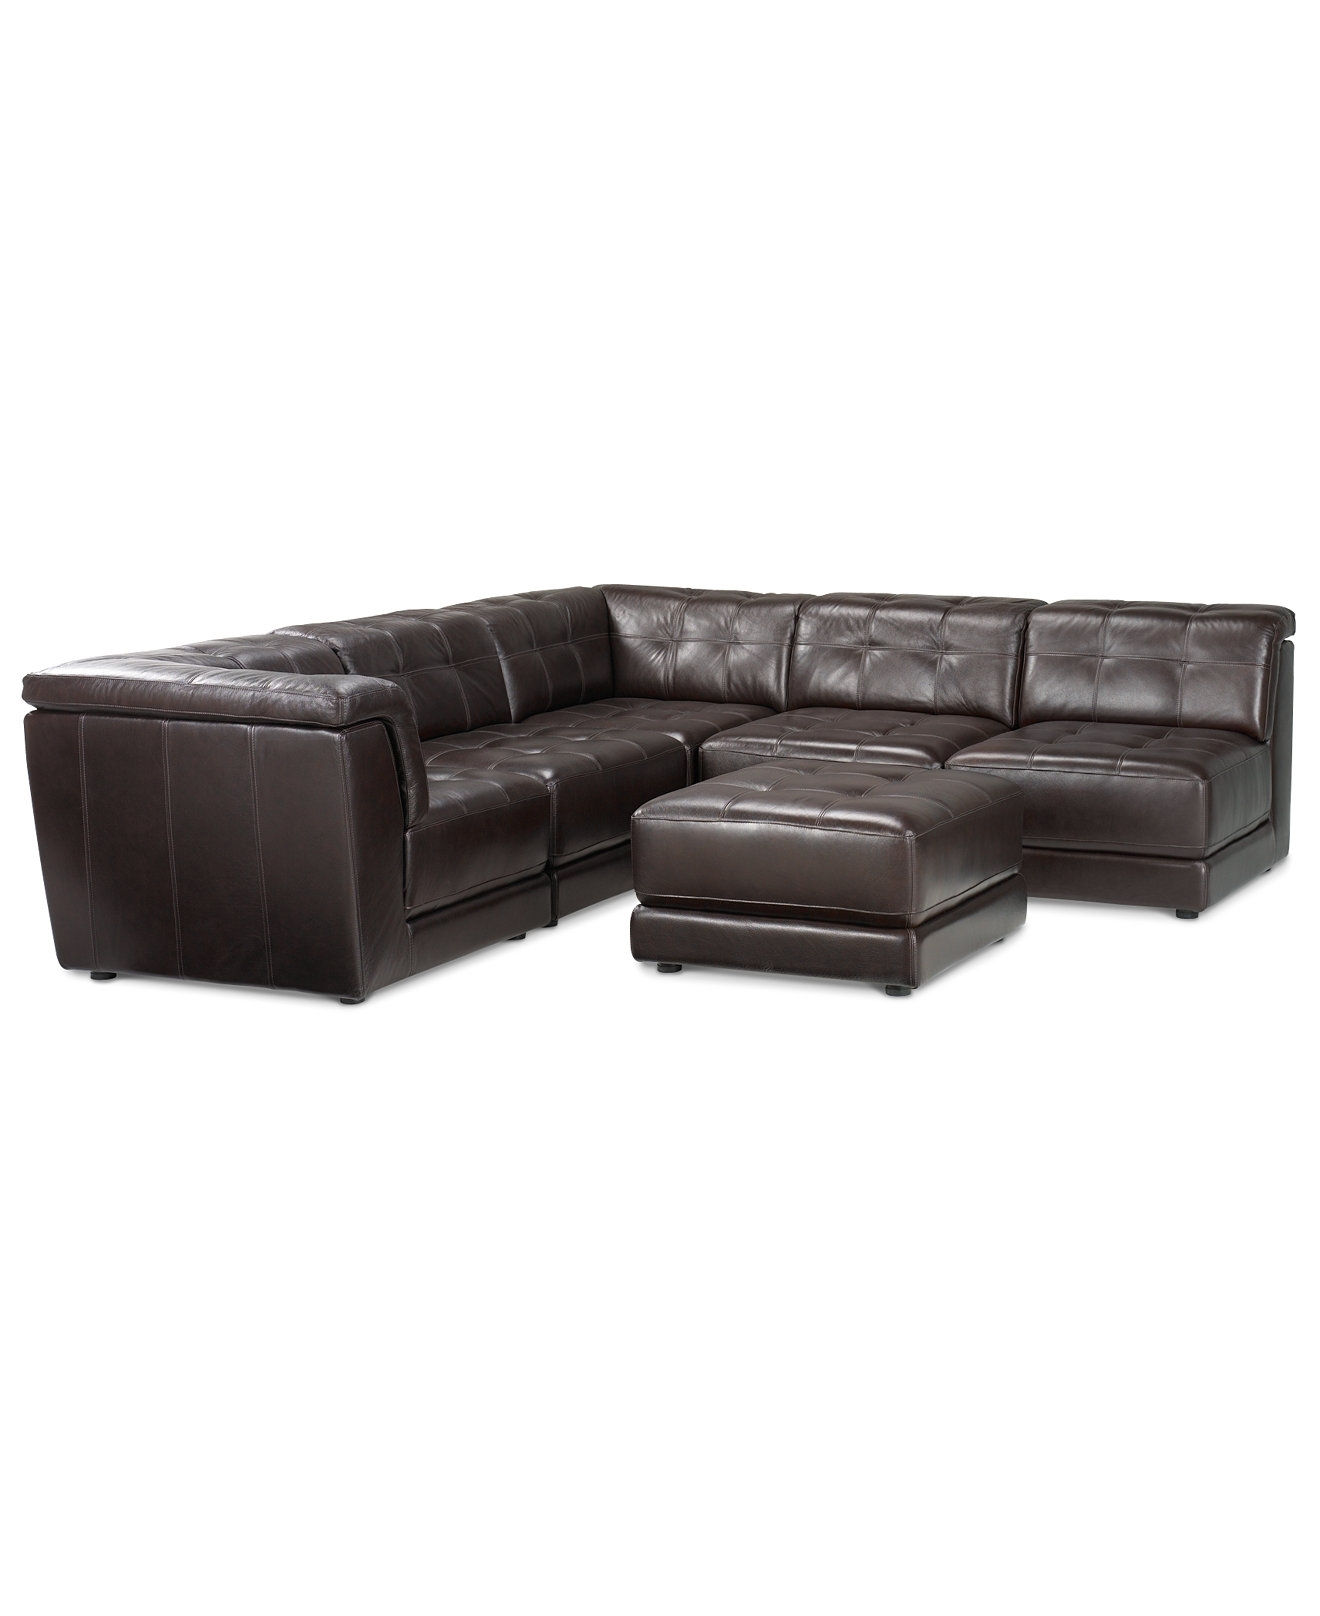 Macys Leather Sectional Sofas For Recent Stacey Leather 6 Piece Modular Sectional Sofa (3 Armless Chairs,  (View 7 of 20)